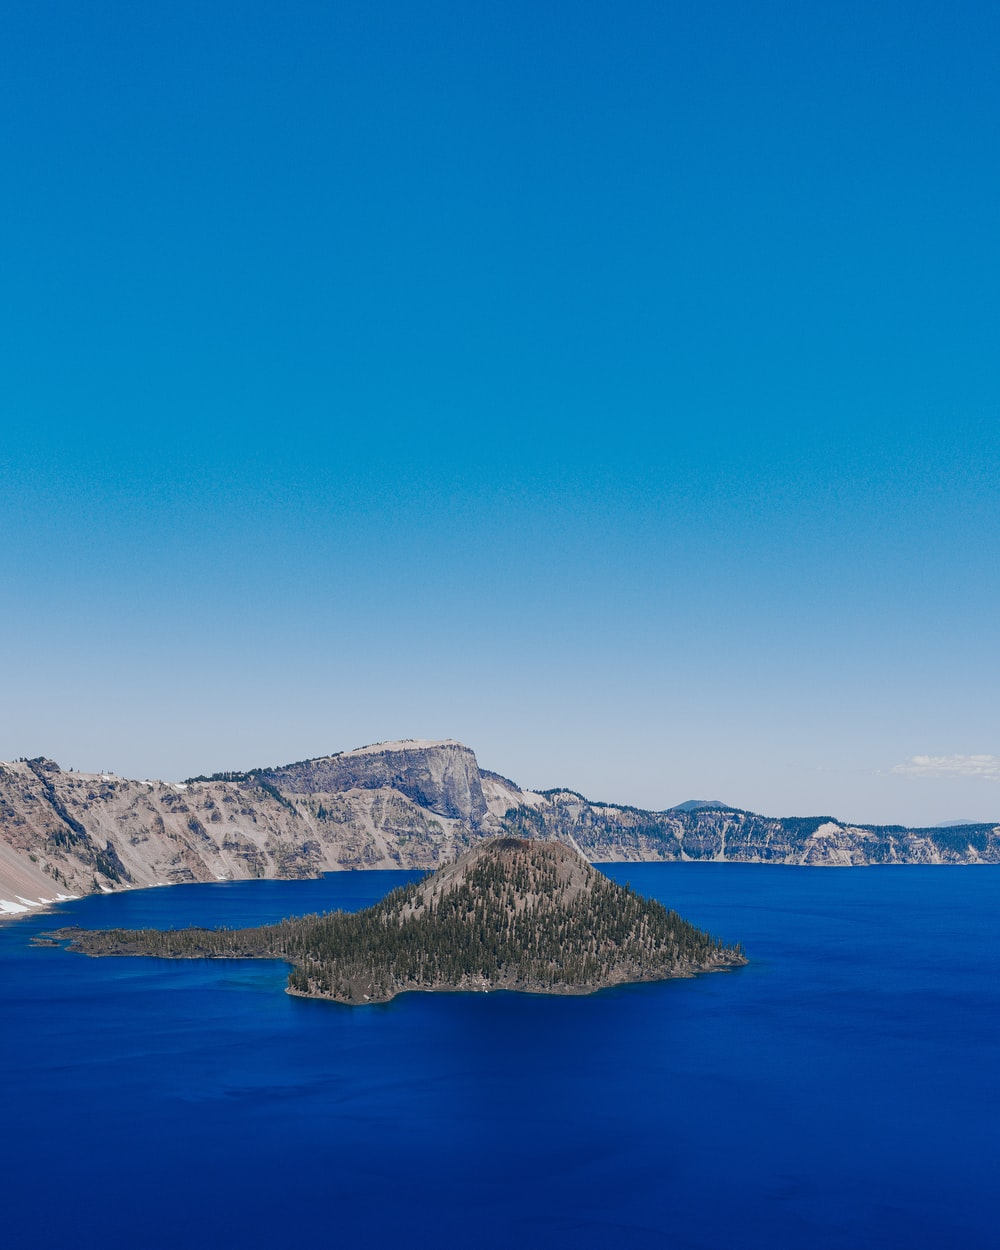 blue sea near mountain under blue sky during daytime